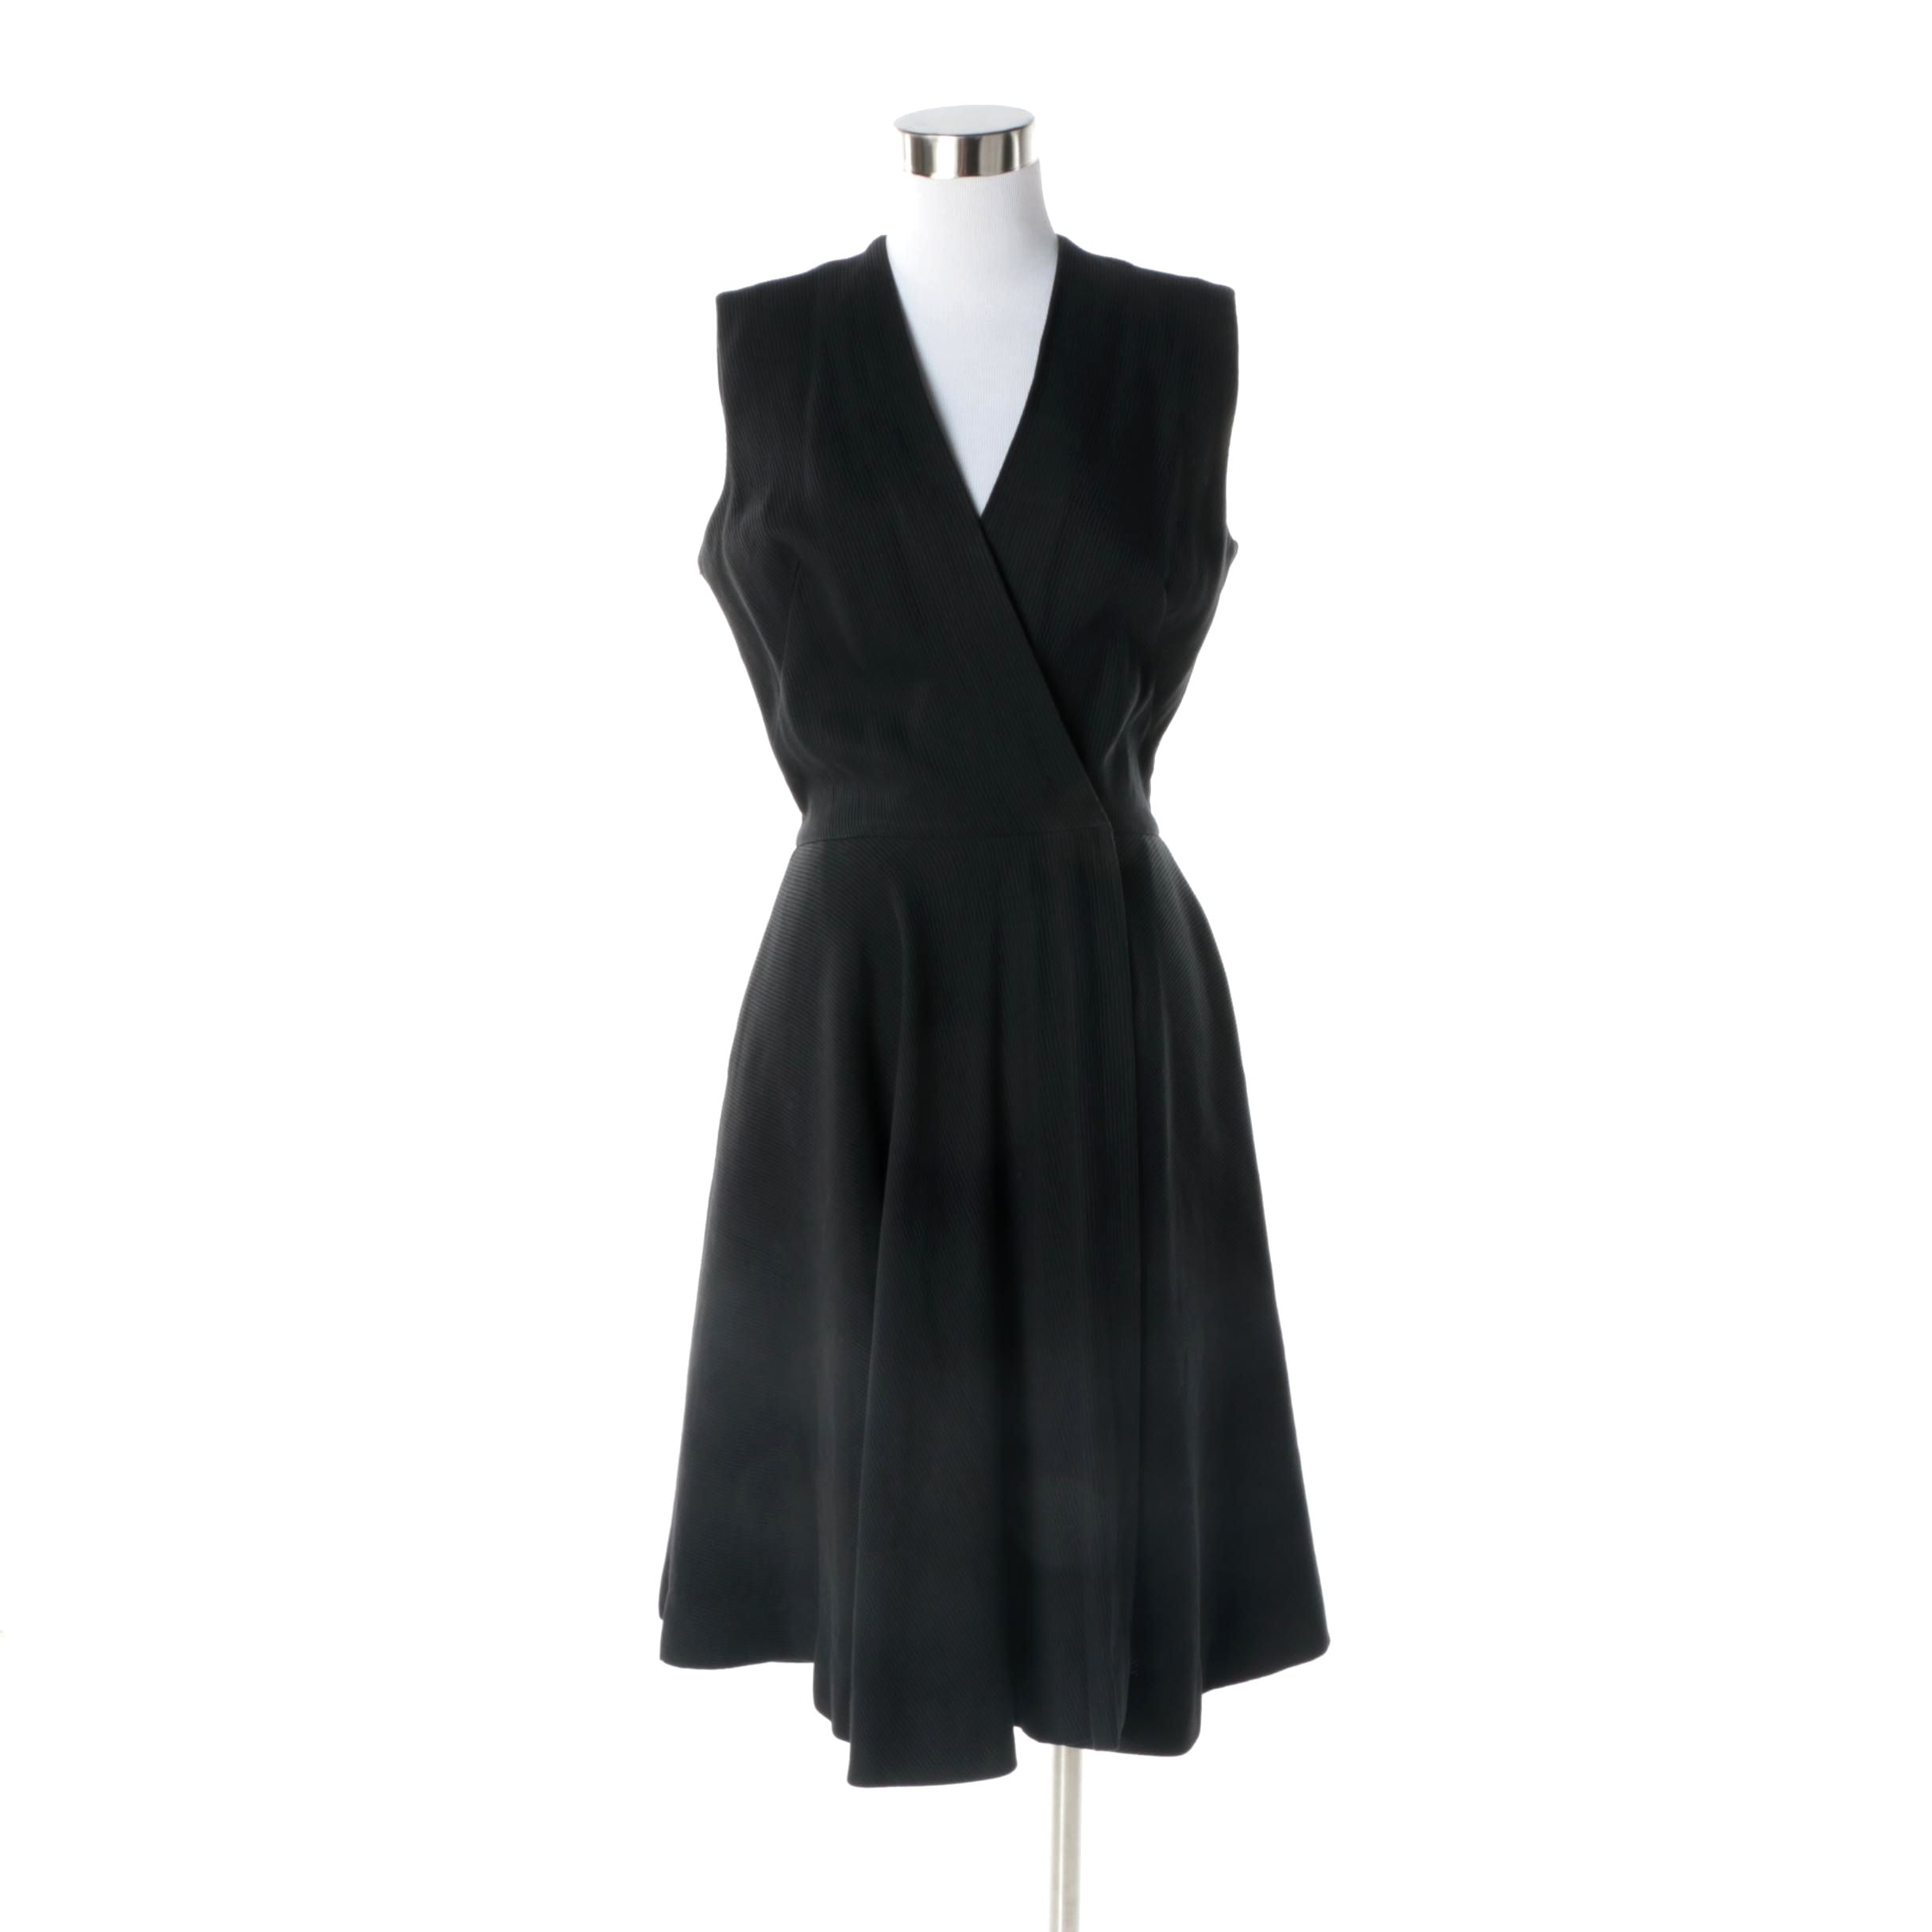 Women's Circa 1970s Vintage Anne Fogarty Black Rib Knit Sleeveless Dress